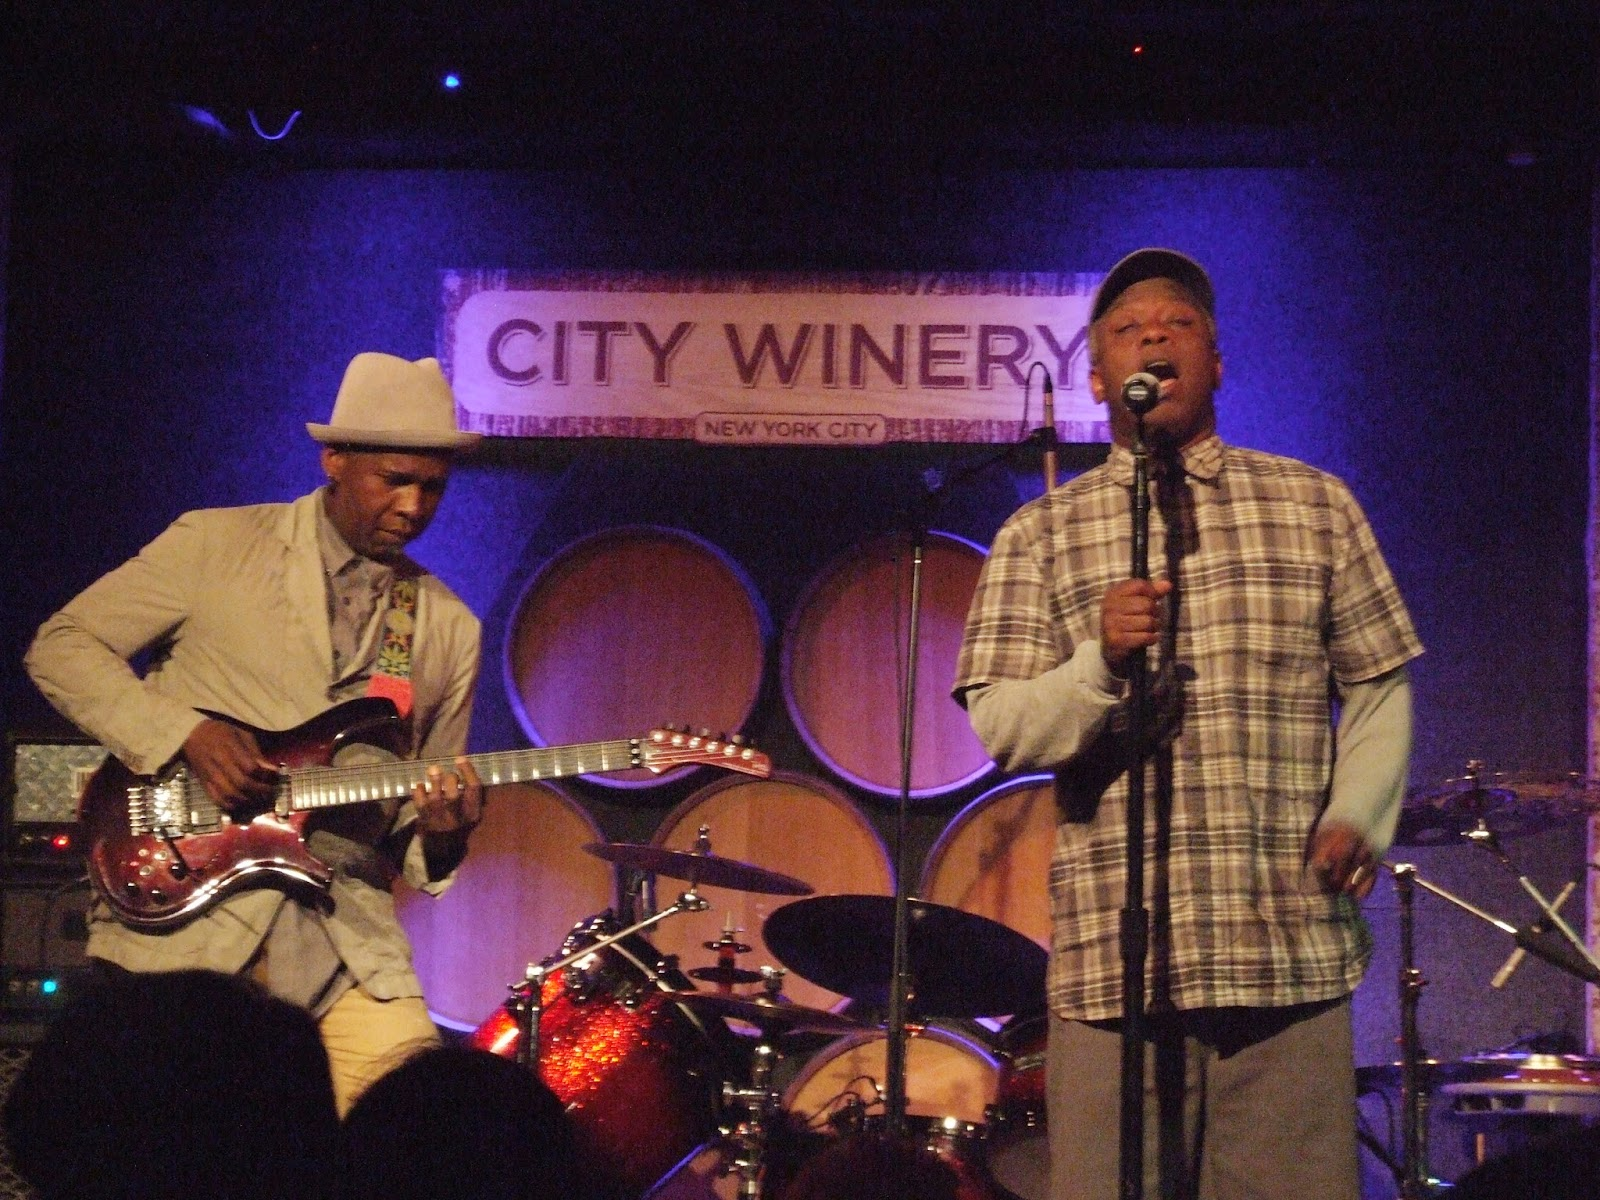 Living Colour - Live Photos from City Winery, NYC 6/1/14